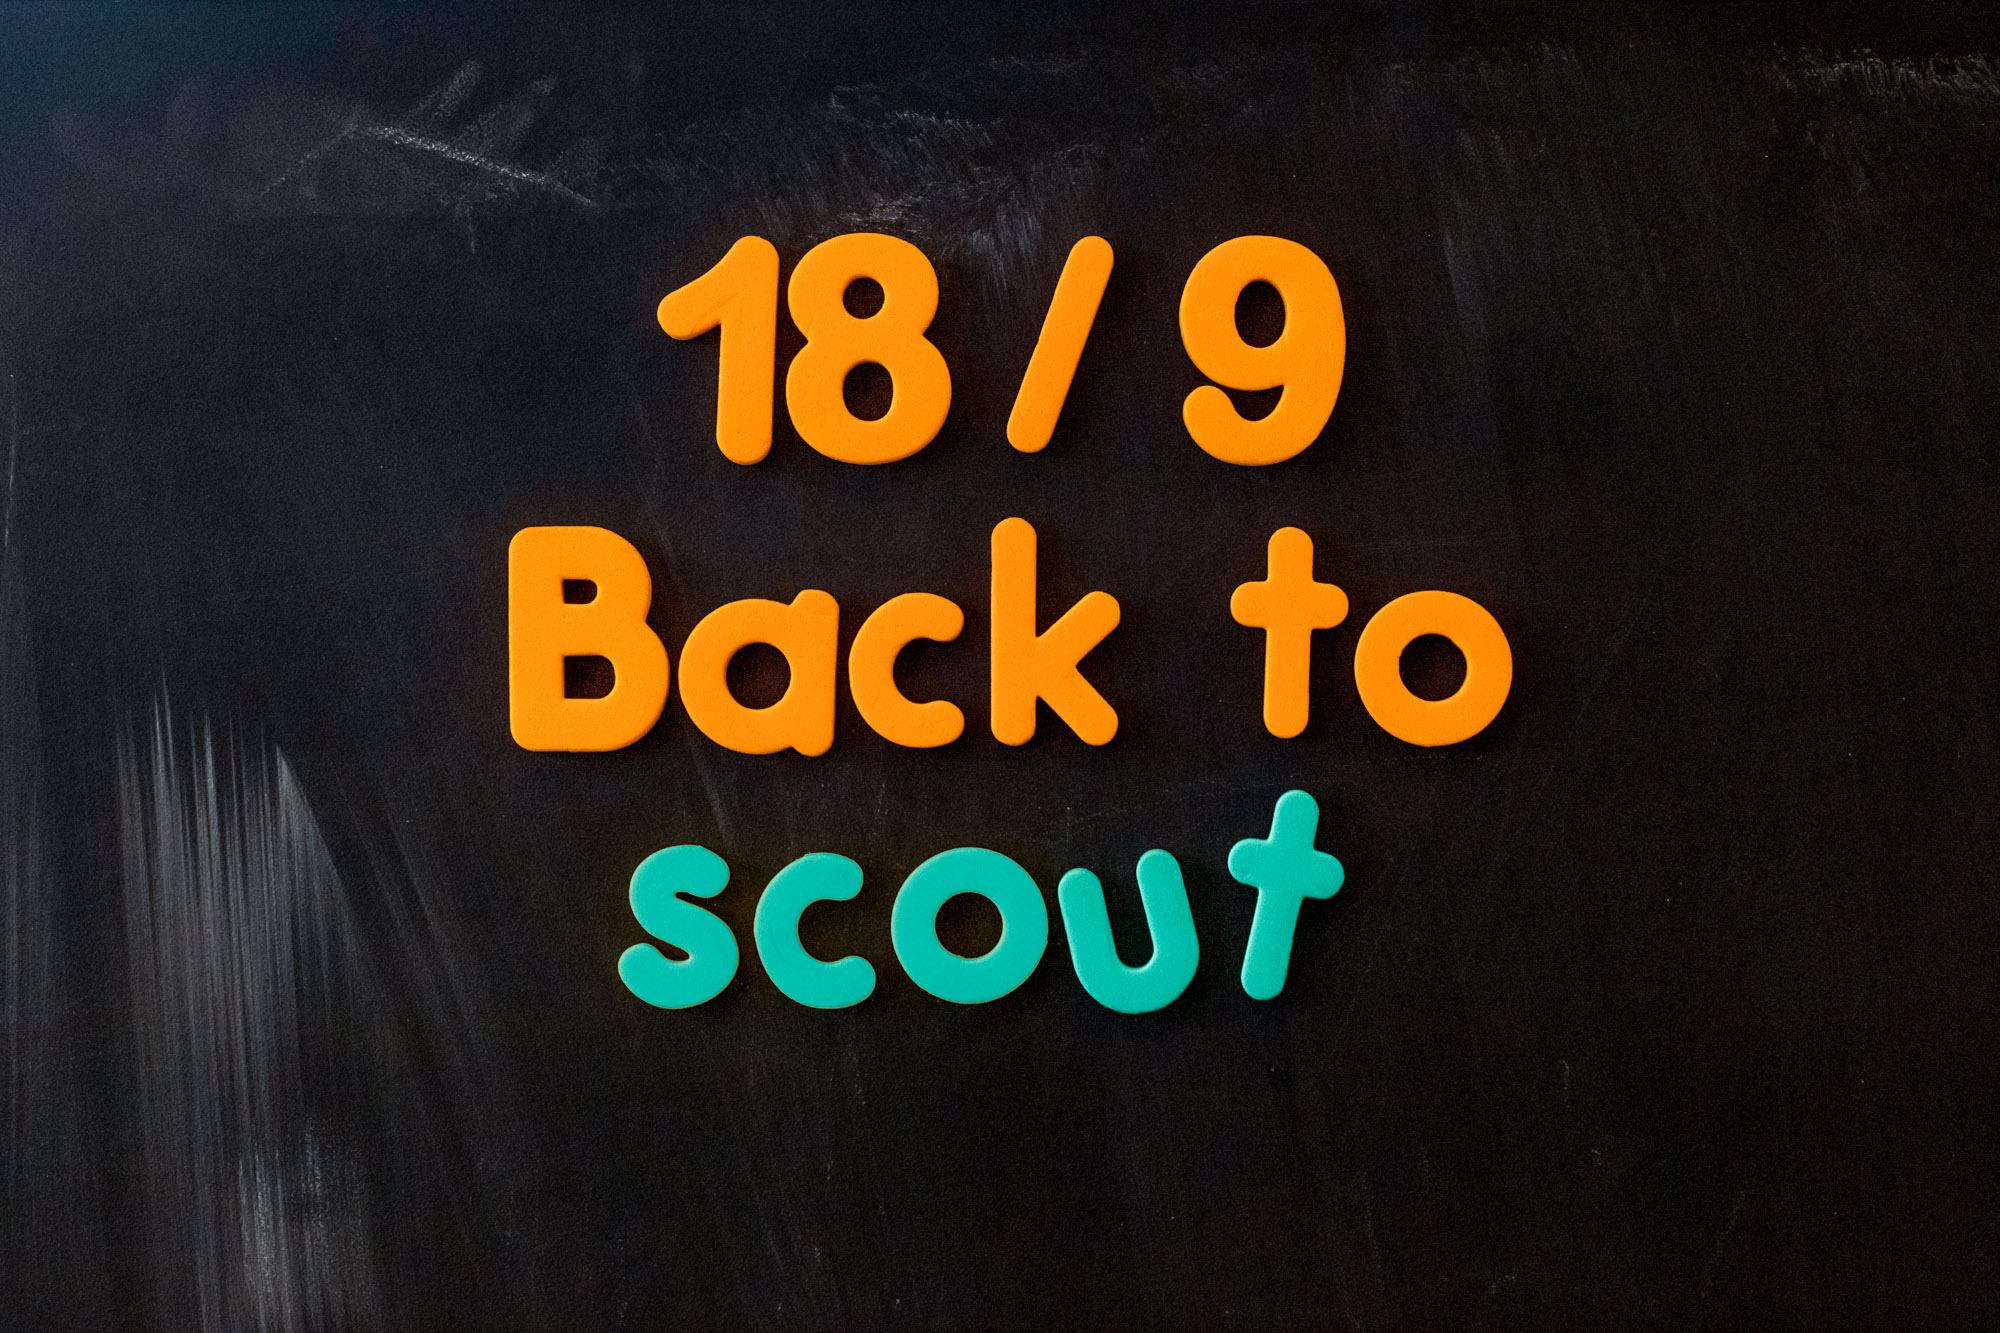 Back to scout 2021